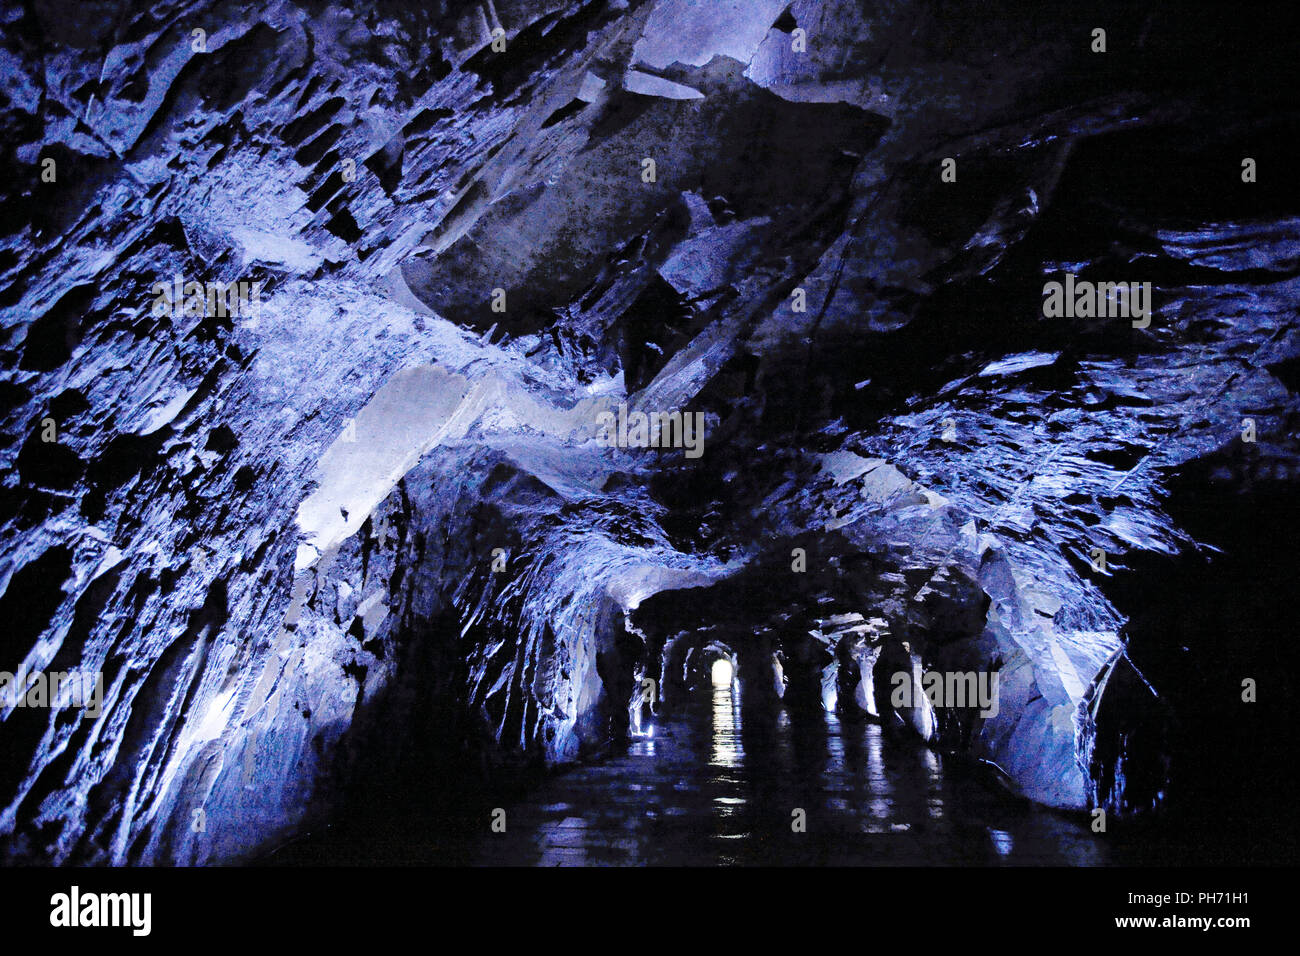 Abela healing cave in Bad Fredeburg, Sauerland, Germany - Stock Image